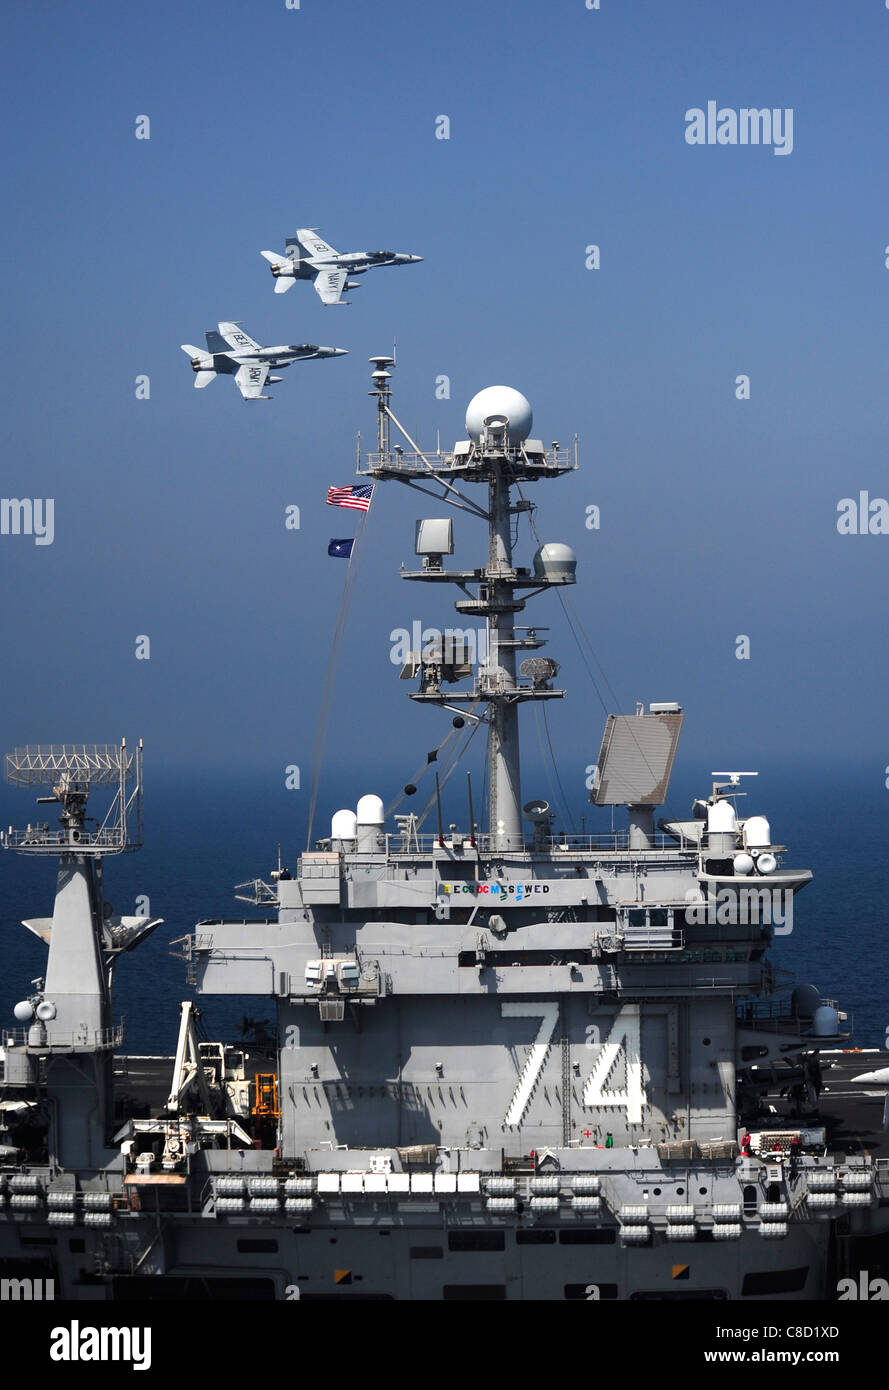 F/A-18C Hornets assigned to the Golden Dragons of Strike Fighter Squadron (VFA) 192 fly over the aircraft carrier - Stock Image